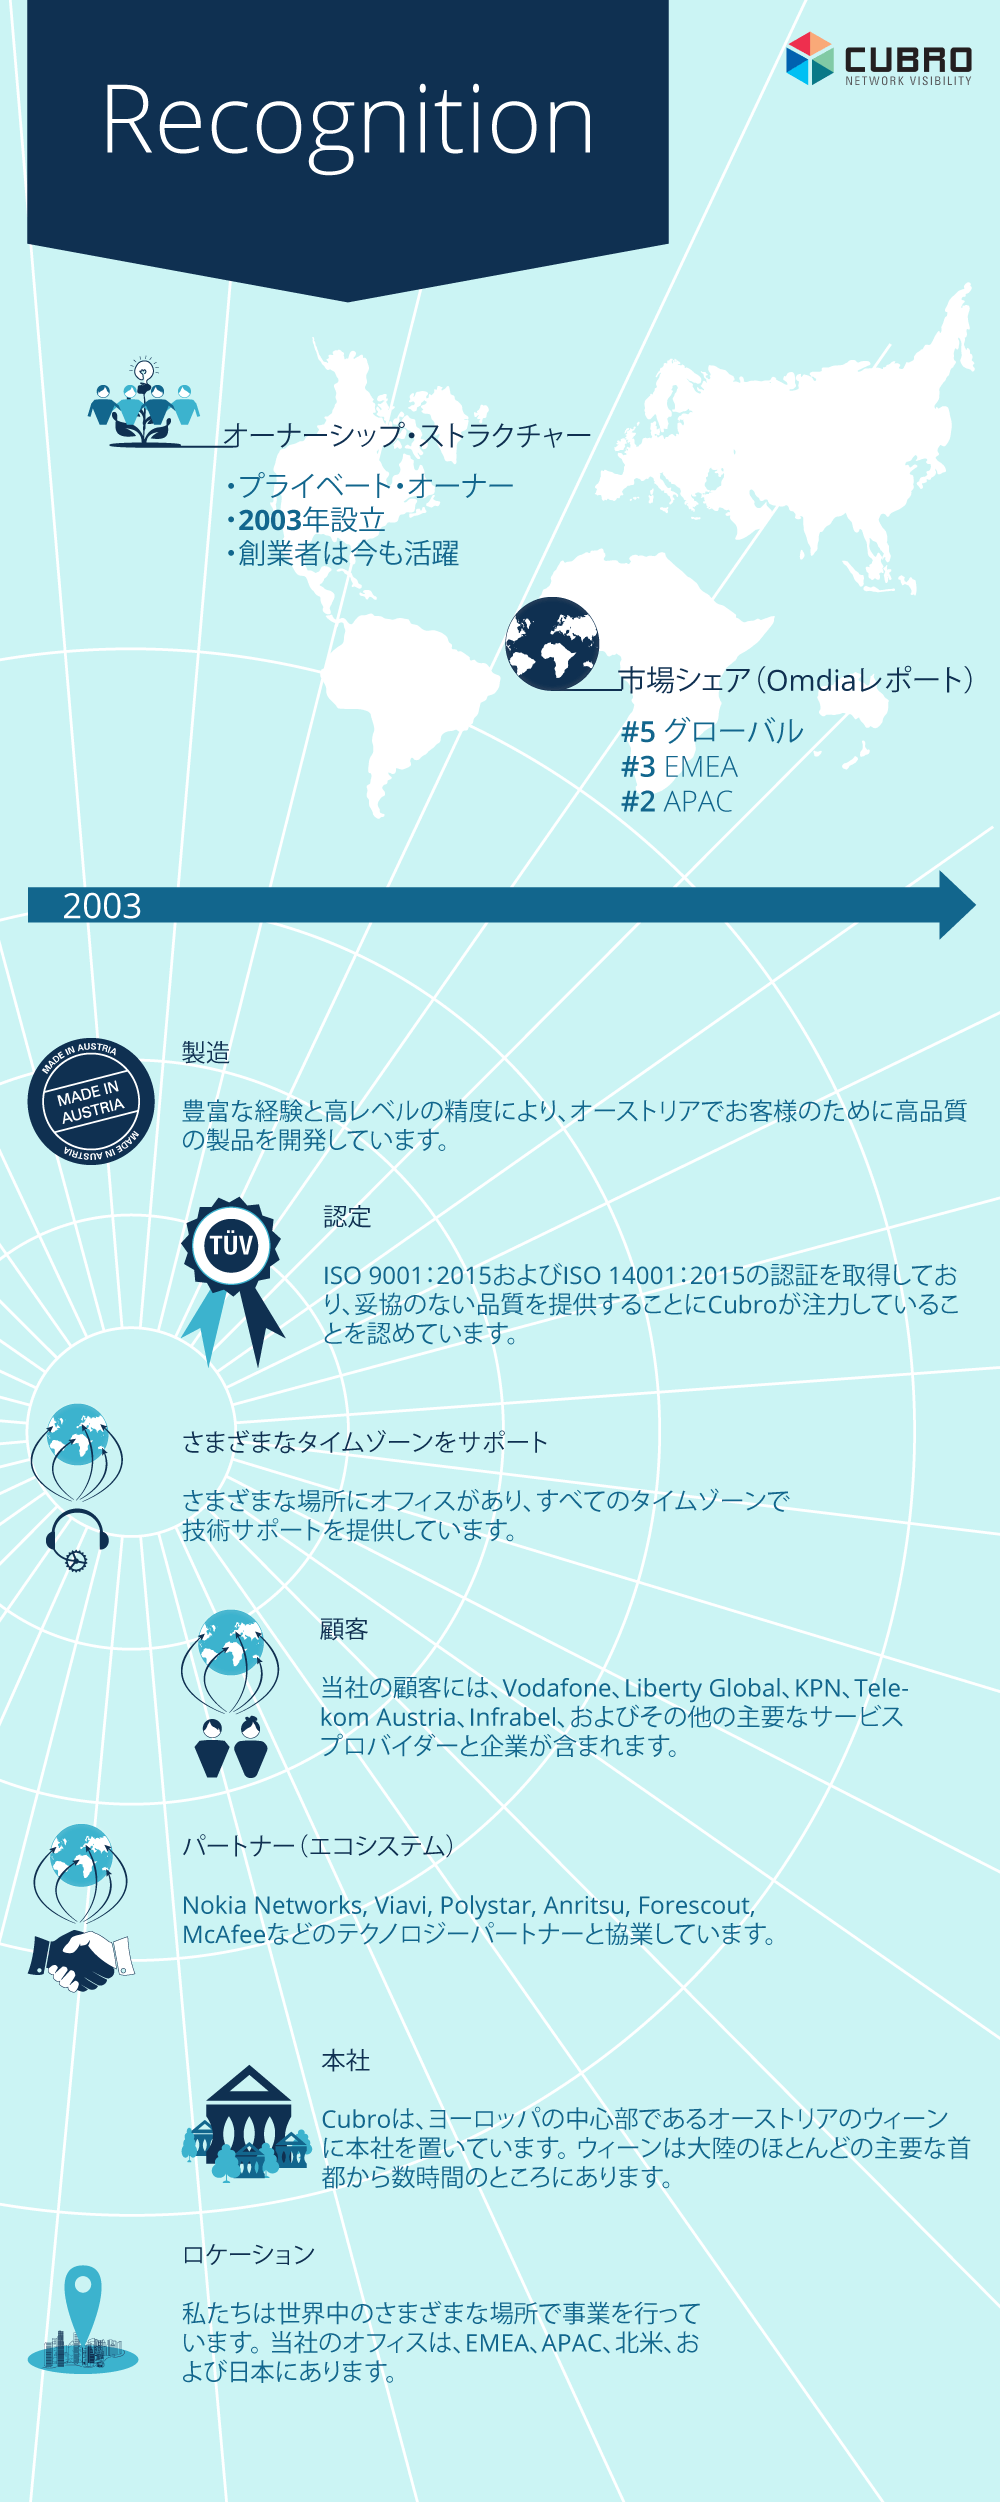 infographic of Cubro's recognition